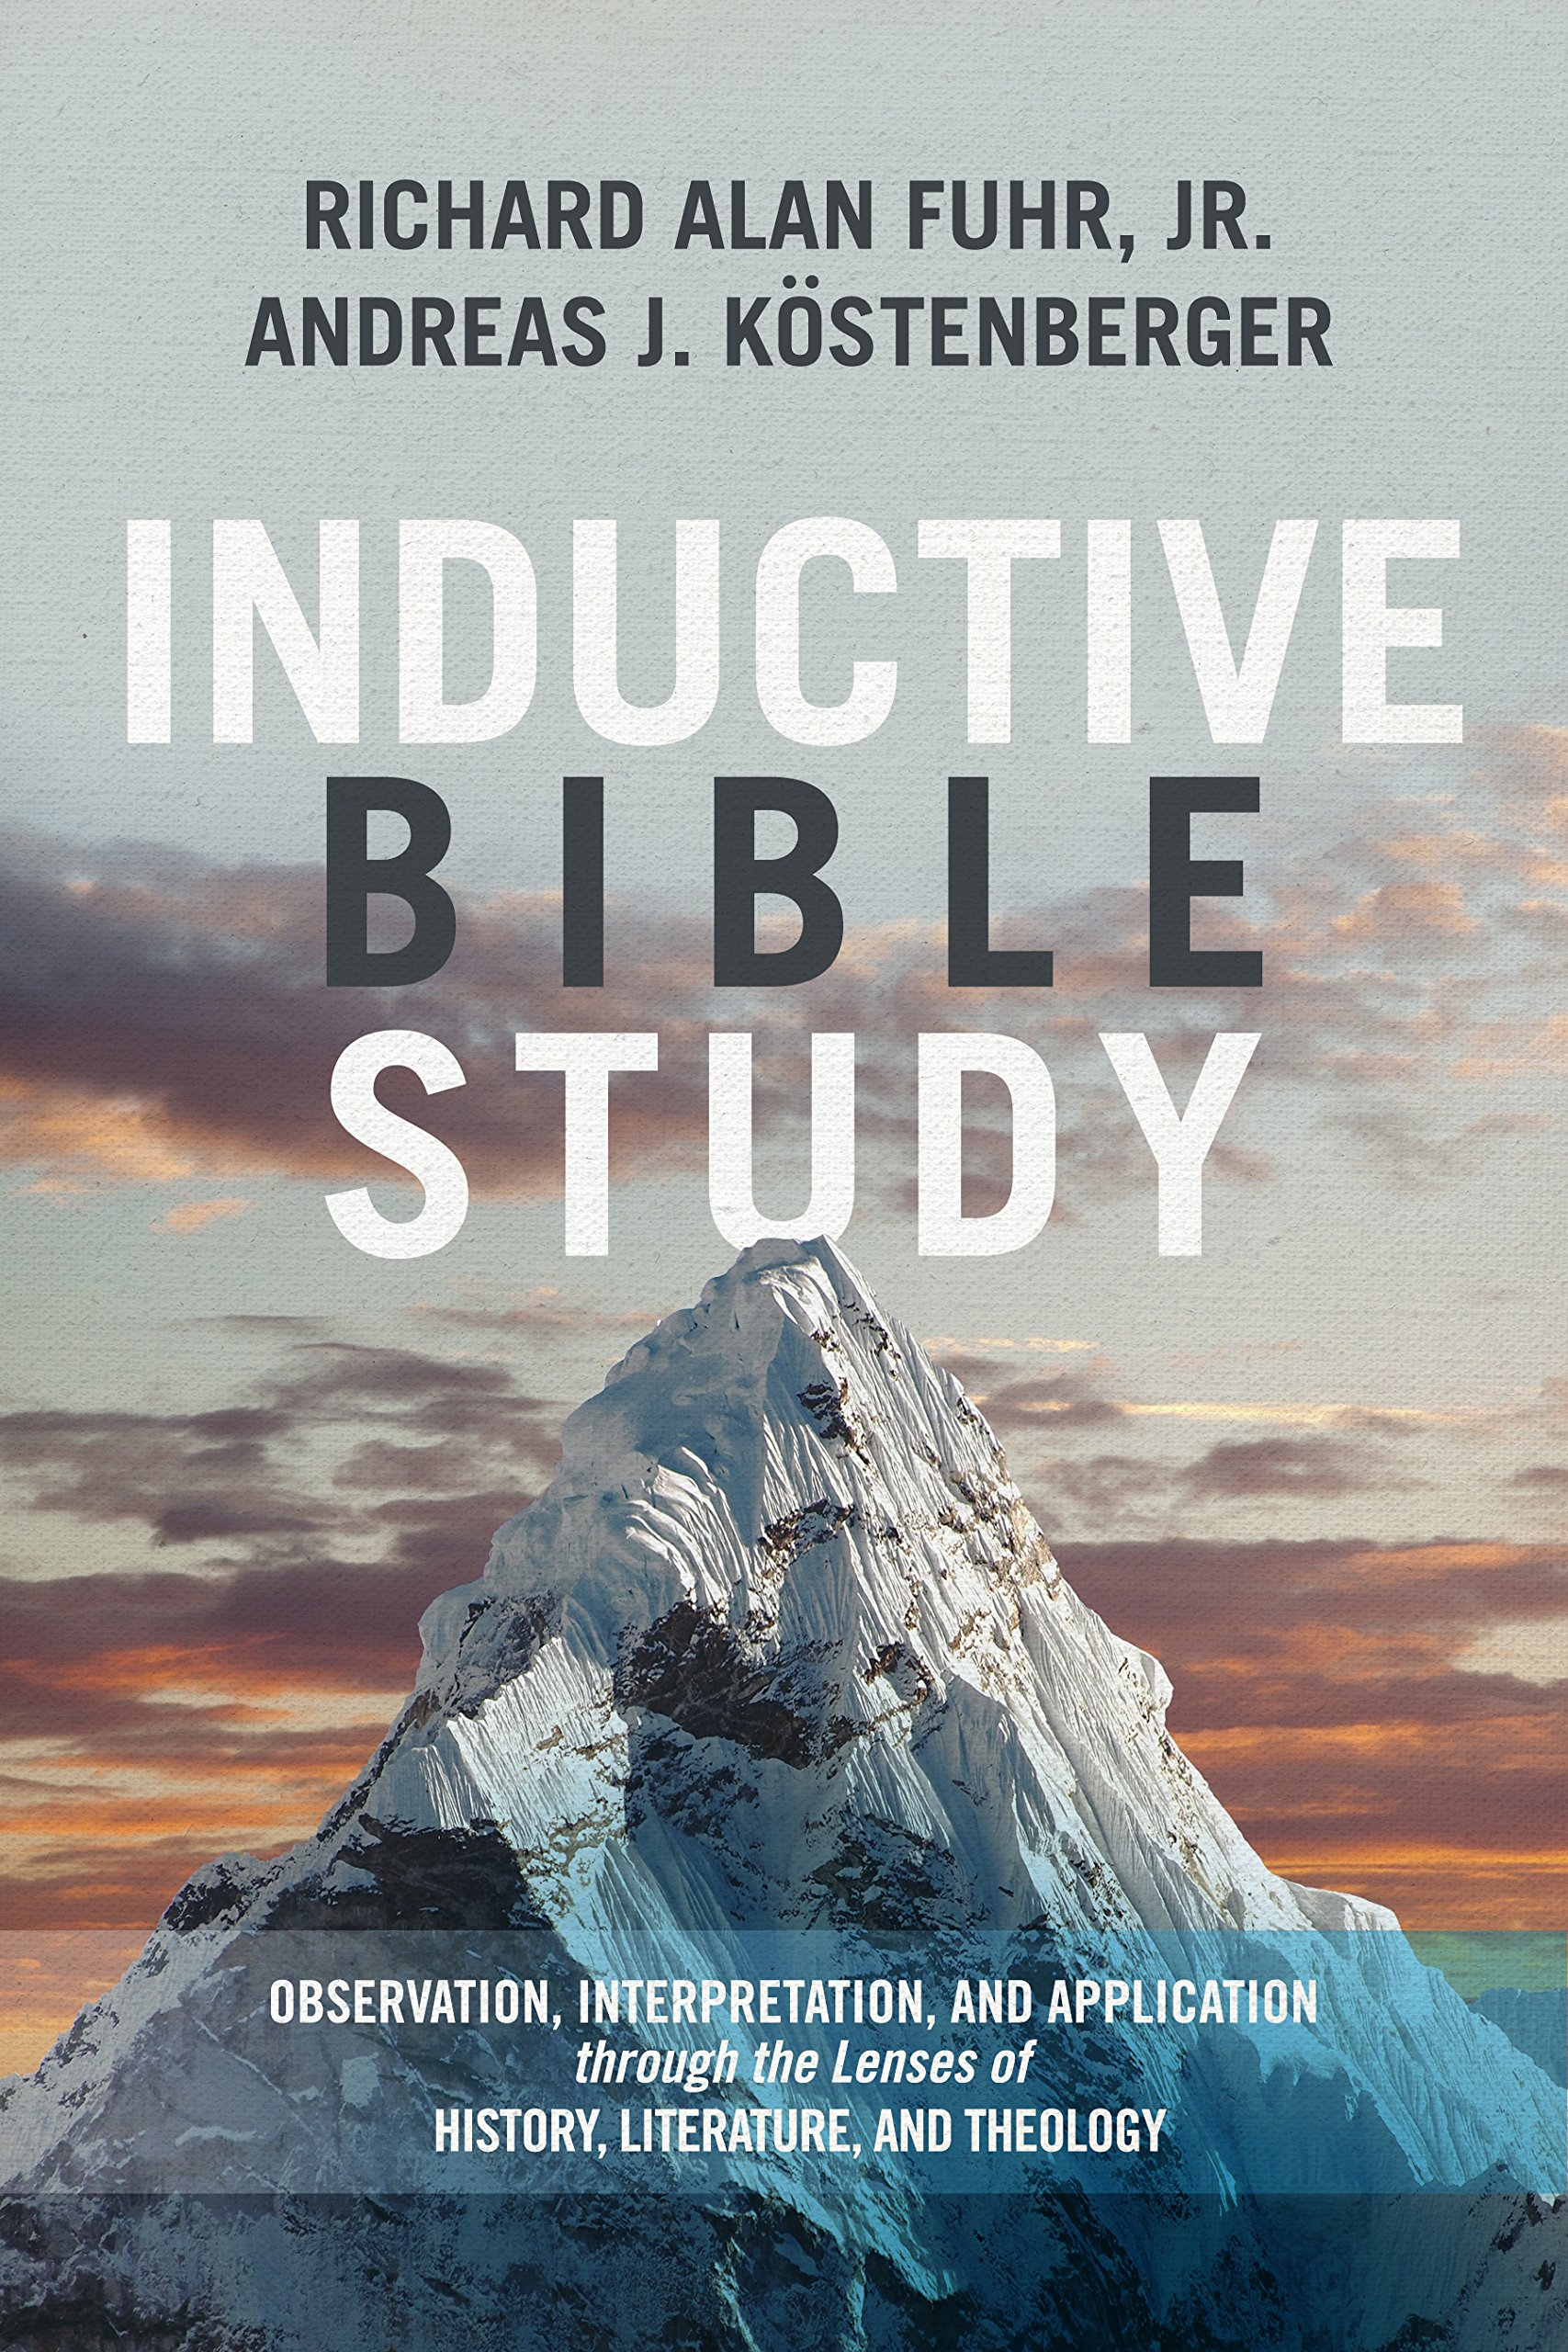 Five Reasons to Study the Bible Inductively - exegetical tools